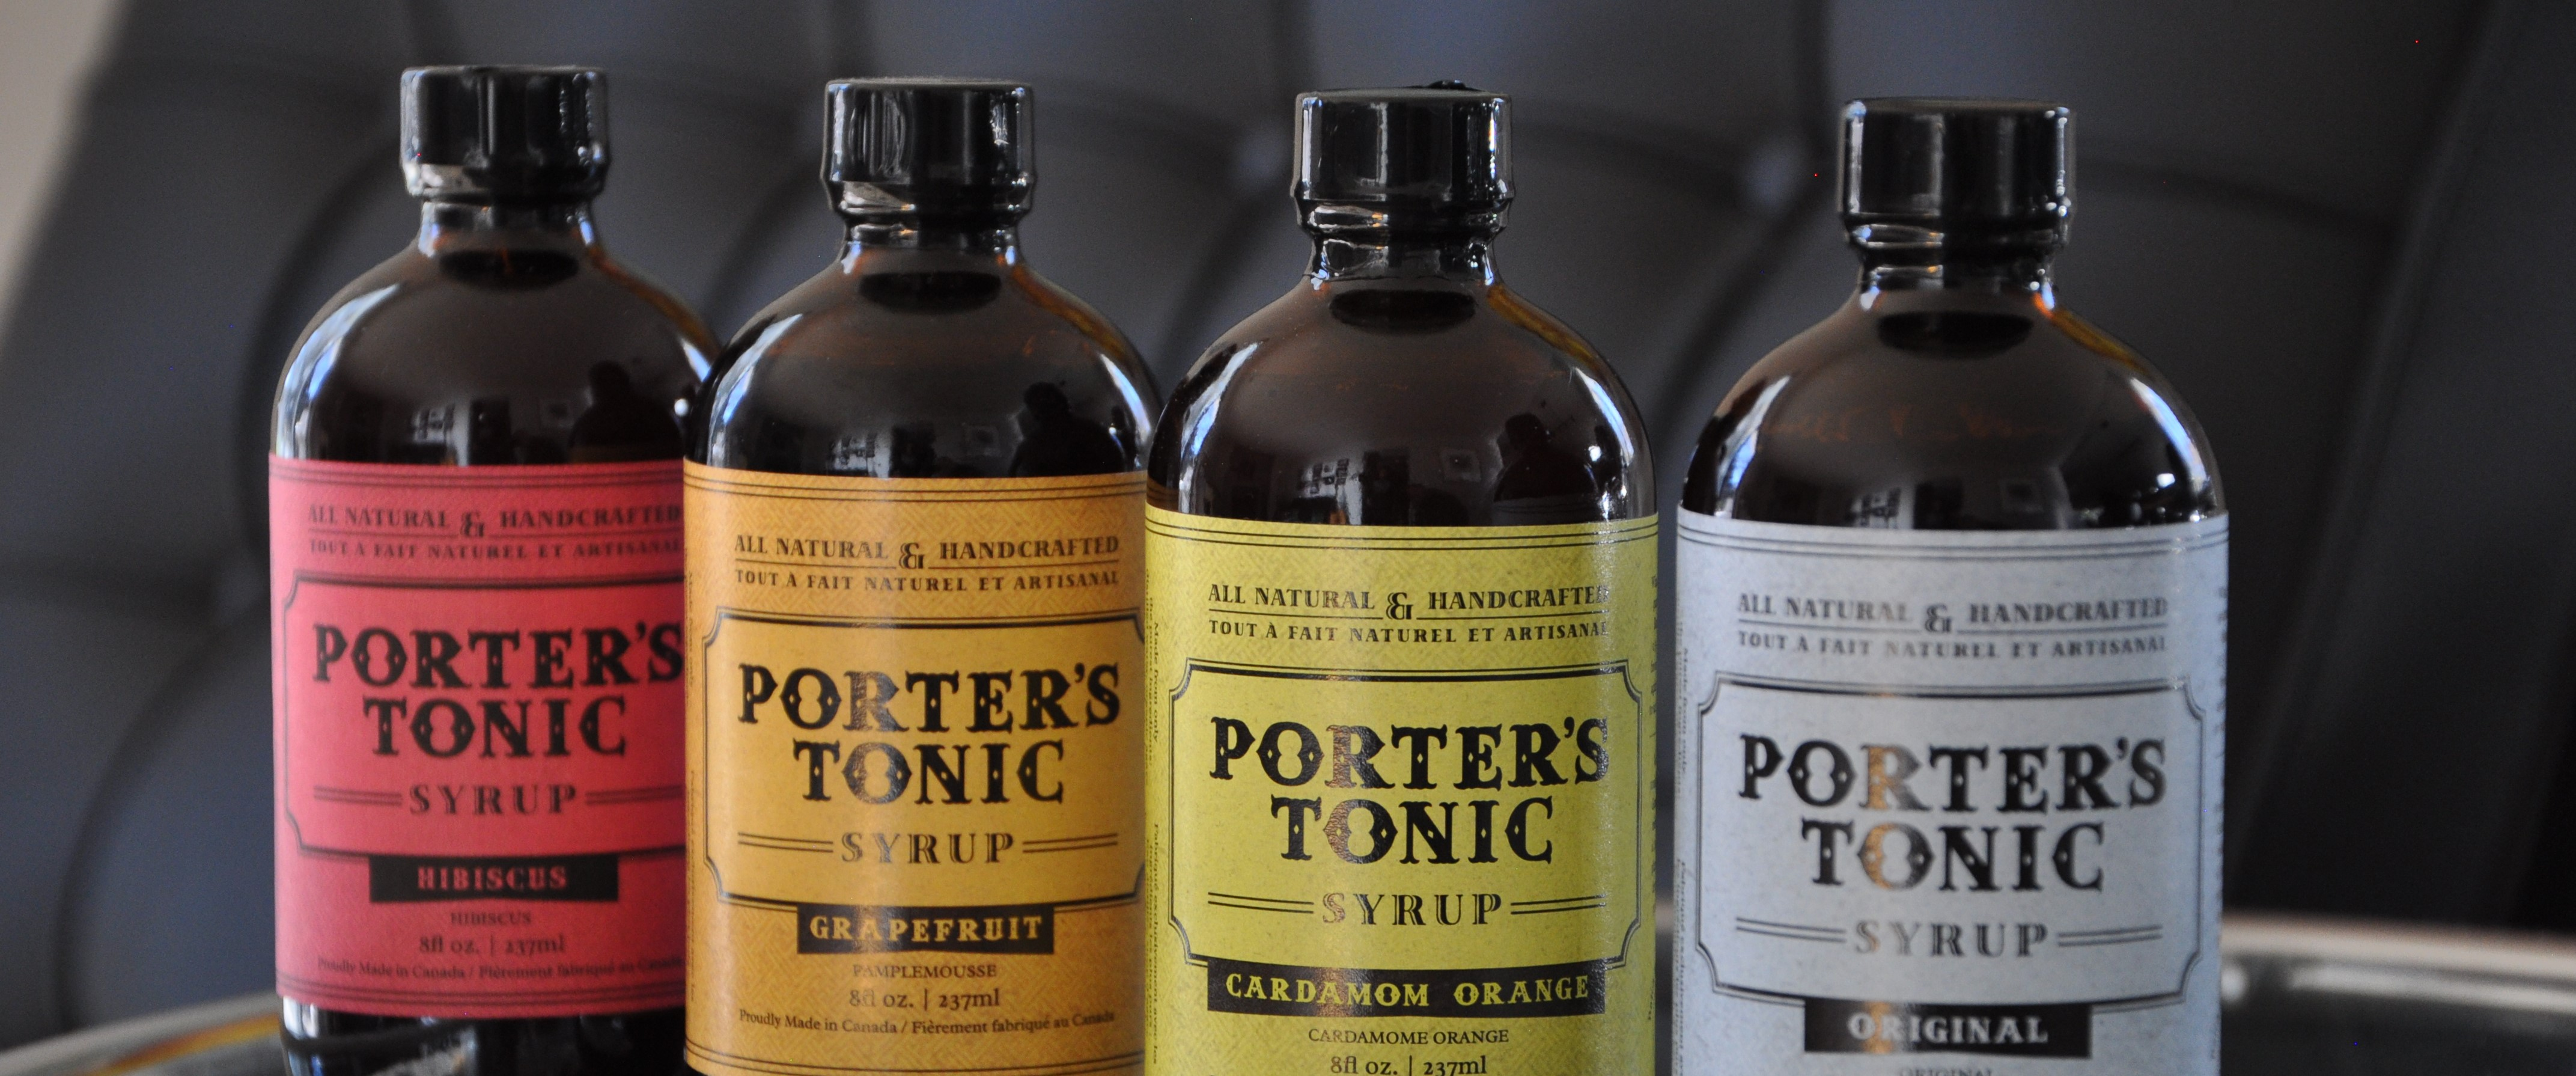 Set of 4 Porter's Tonic bottles